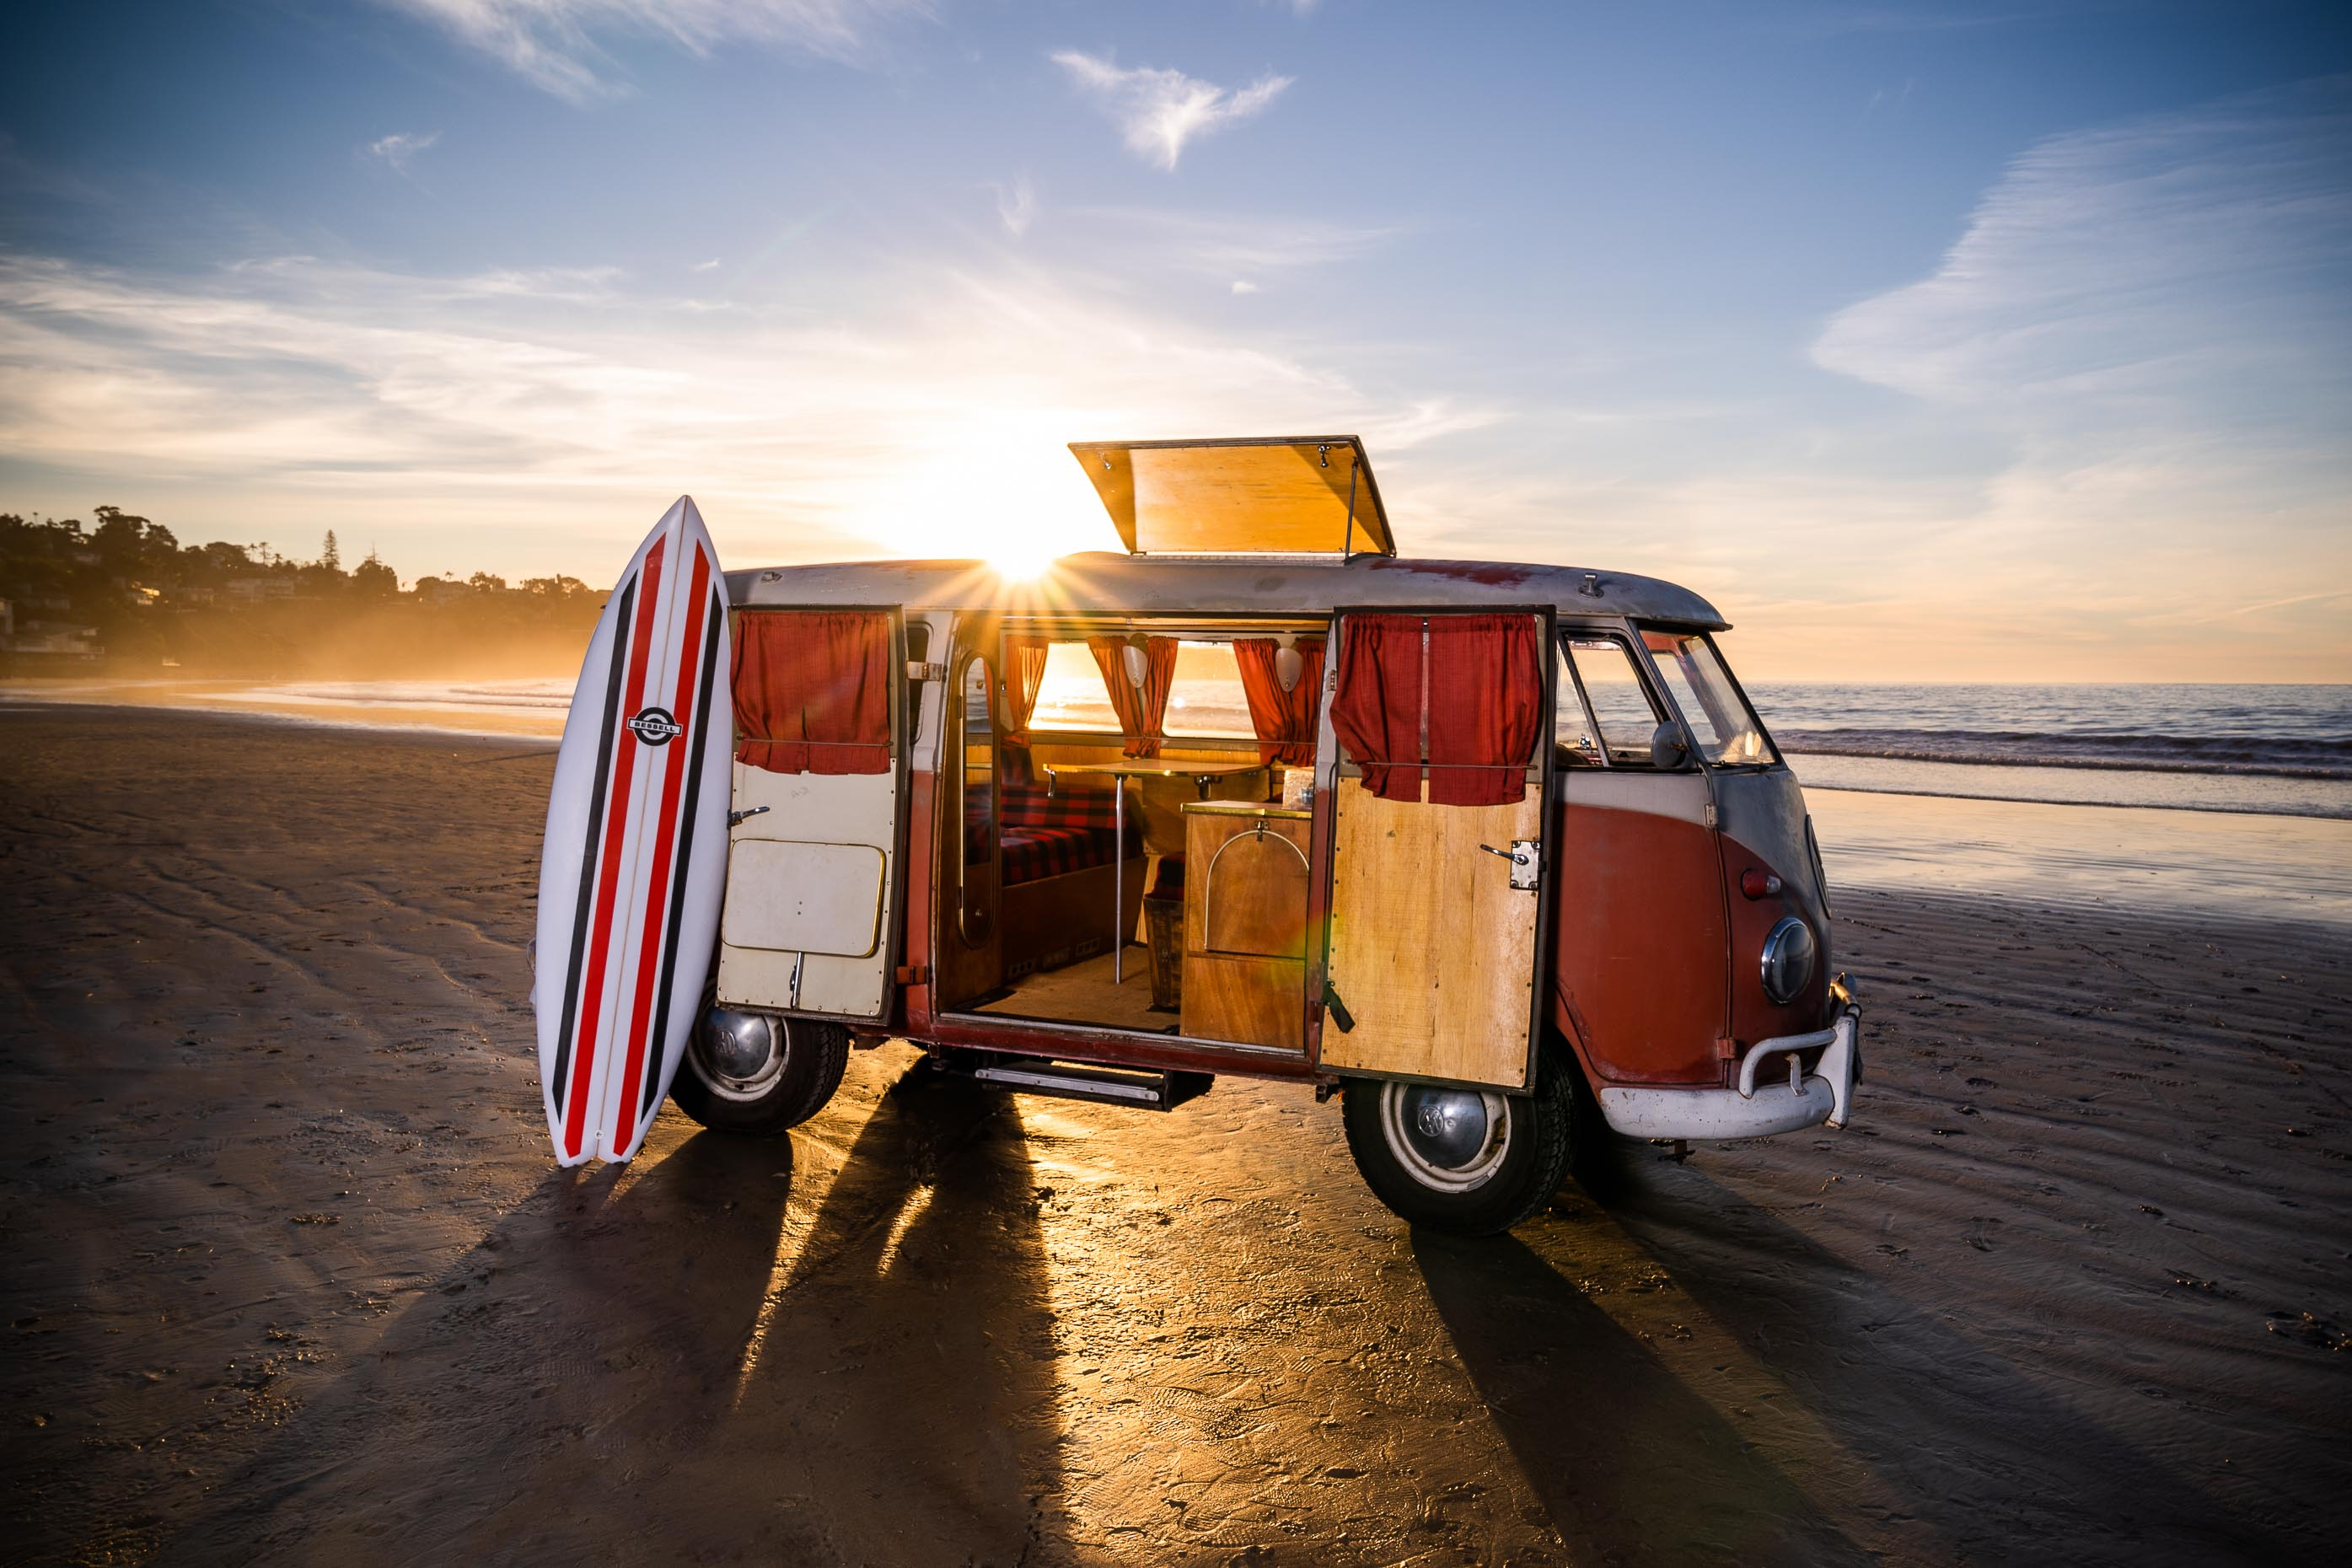 aaron-ingrao-keepers-of-the-craft-tim-bessell-surfboards-san-diego-1959-westfalia-volkswagon-SO23-VW-Bus-6916-Edit-Edit